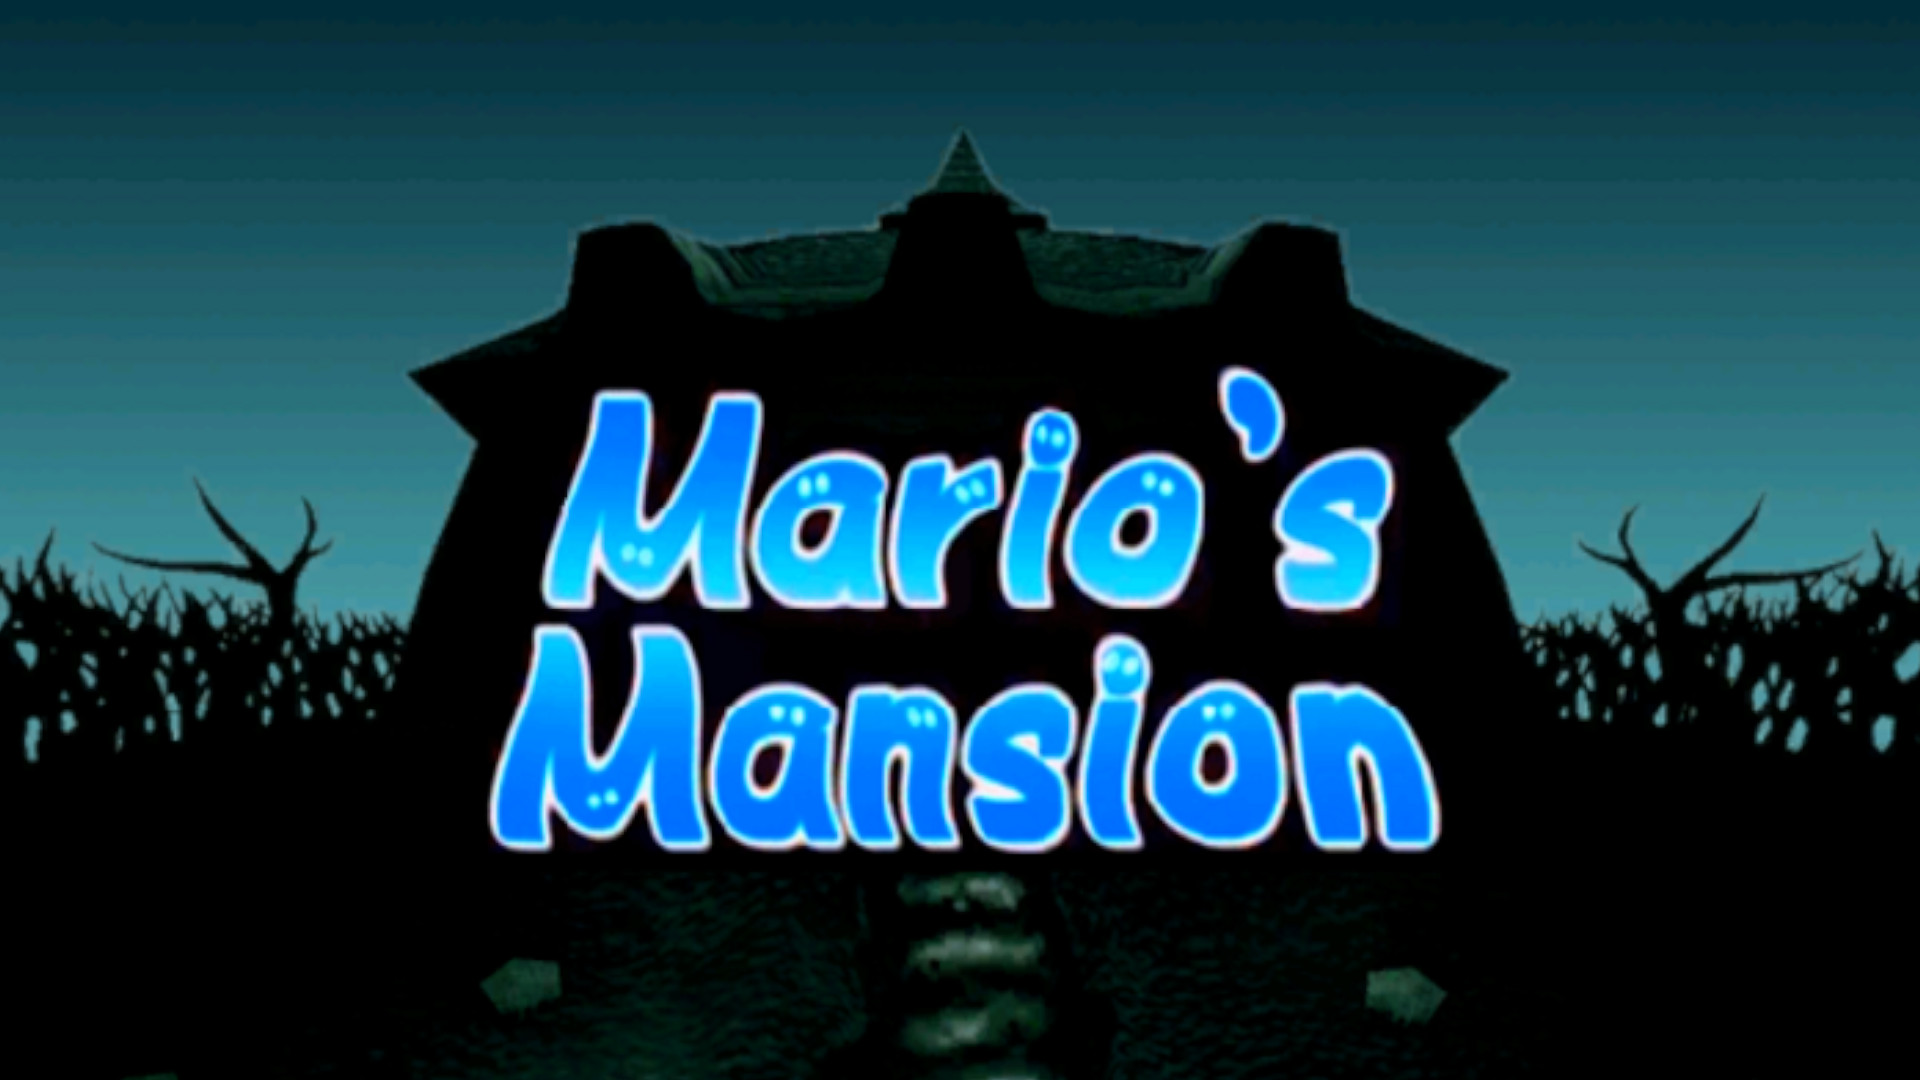 Luigi's Mansion is now Mario's Mansion, thanks to a ROM hack